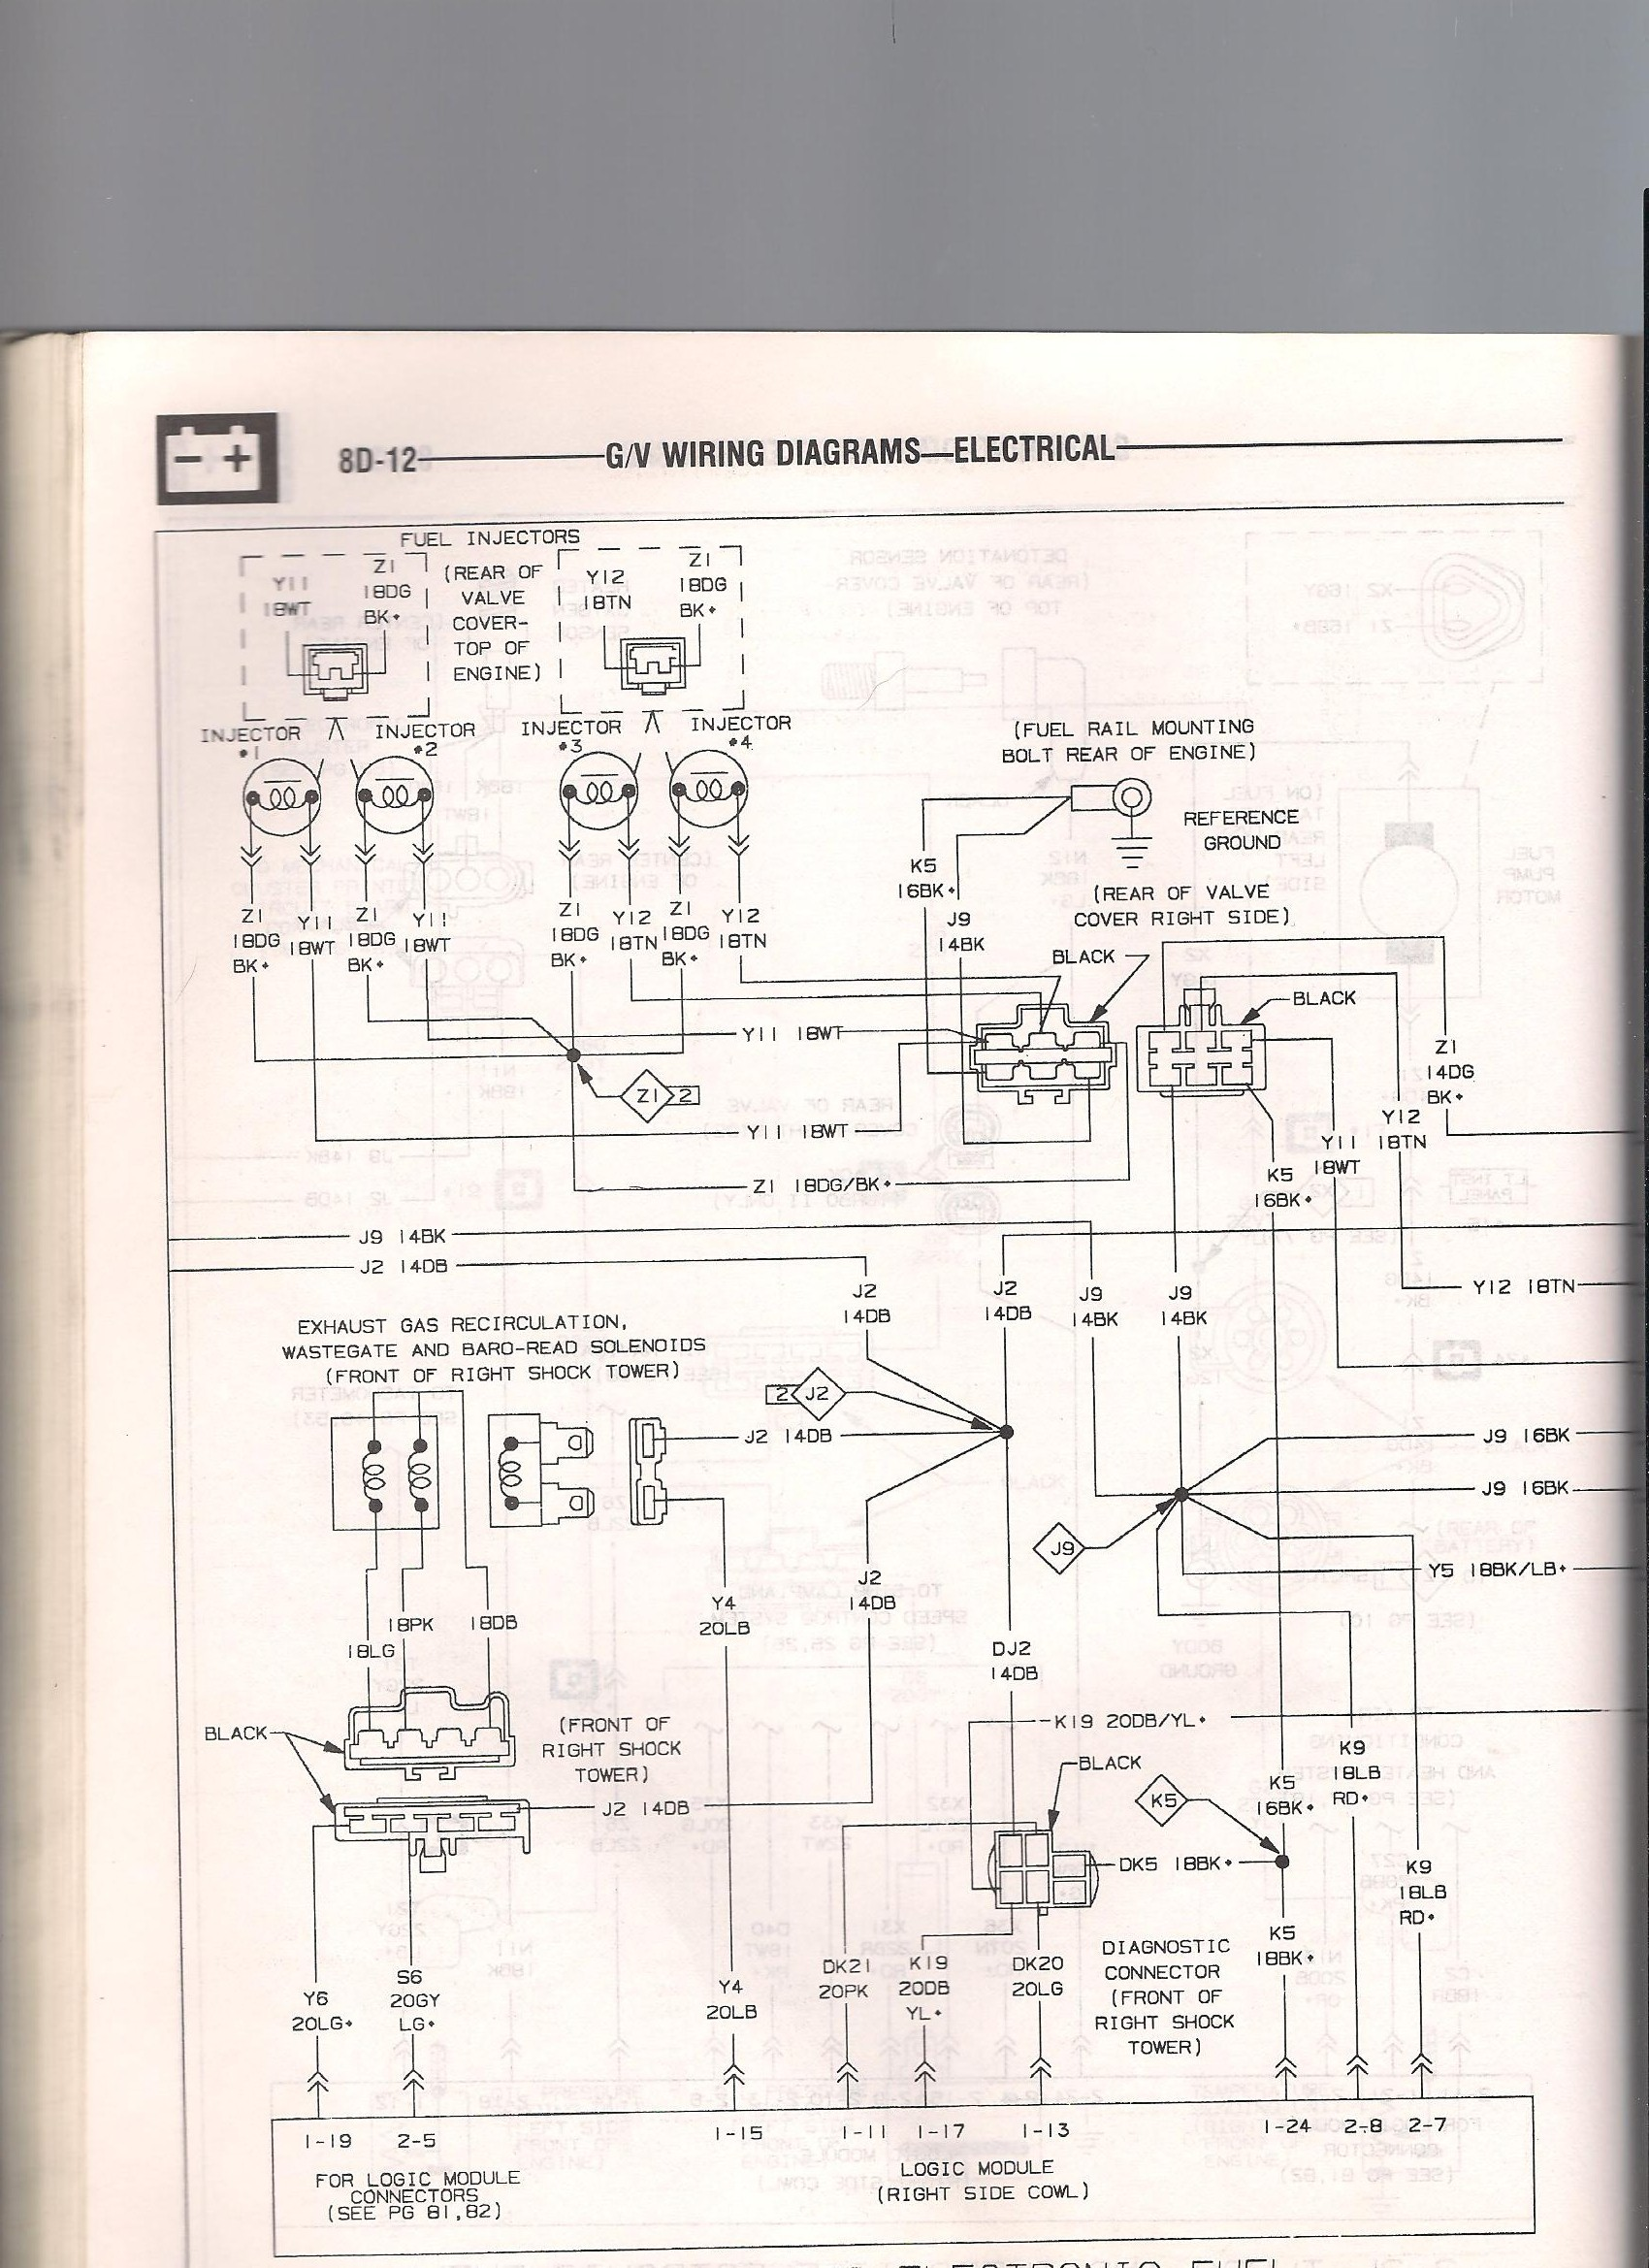 Wiring Diagram 1985 Dodge Shelby Charger Electrical Diagrams 1989 Dakota Overcharging 2000